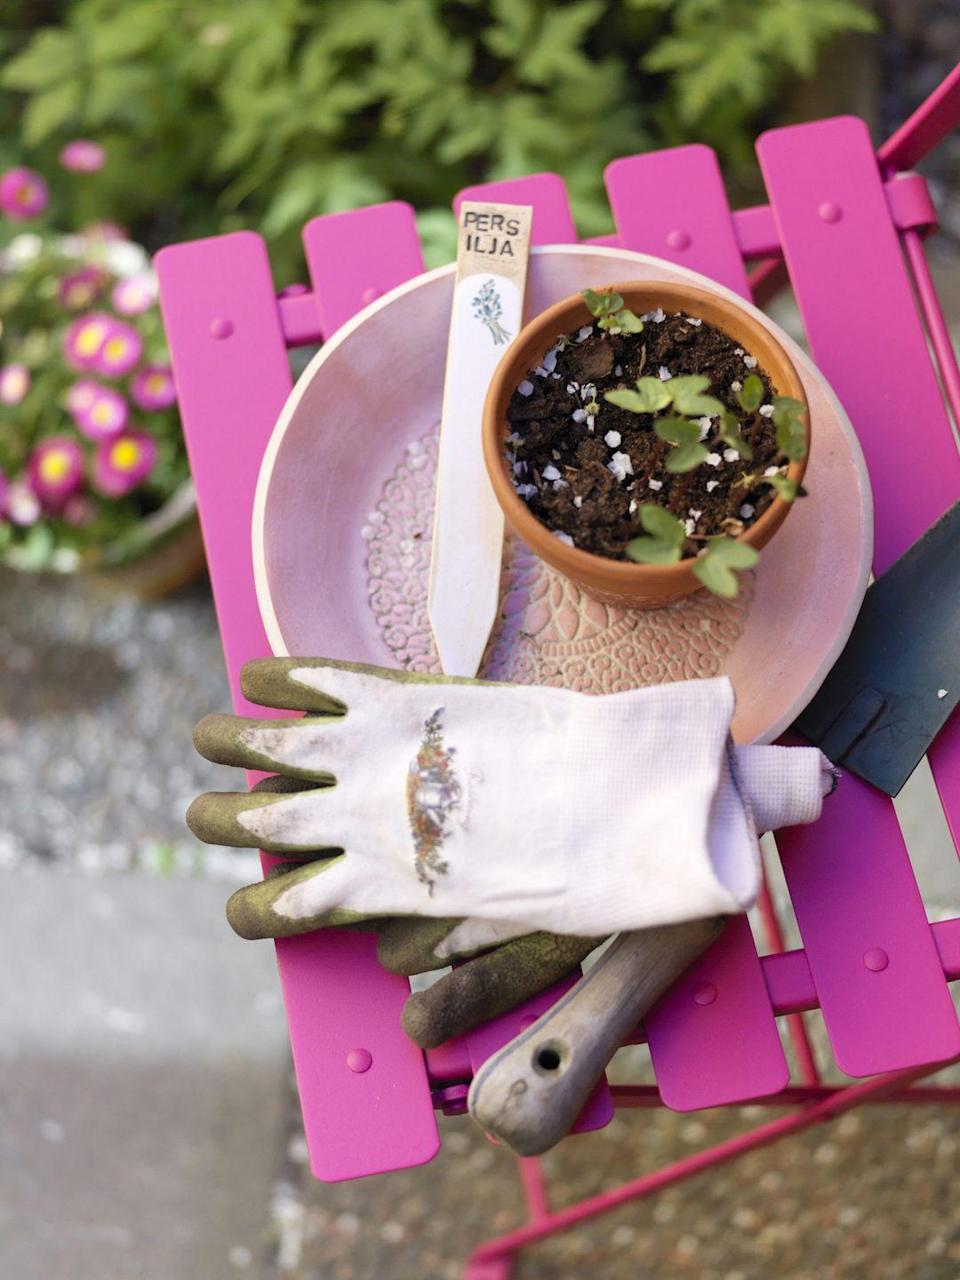 """<p>Of course there's nothing wrong with getting a little dirt on your fingers, but if your gloves are too beat up, you could be susceptible to injuries. Consider repurposing them and the rest of your old tools into <a href=""""https://www.countryliving.com/diy-crafts/g2484/repurposed-gardening-tools/"""" rel=""""nofollow noopener"""" target=""""_blank"""" data-ylk=""""slk:pretty DIY projects"""" class=""""link rapid-noclick-resp"""">pretty DIY projects</a>.</p>"""